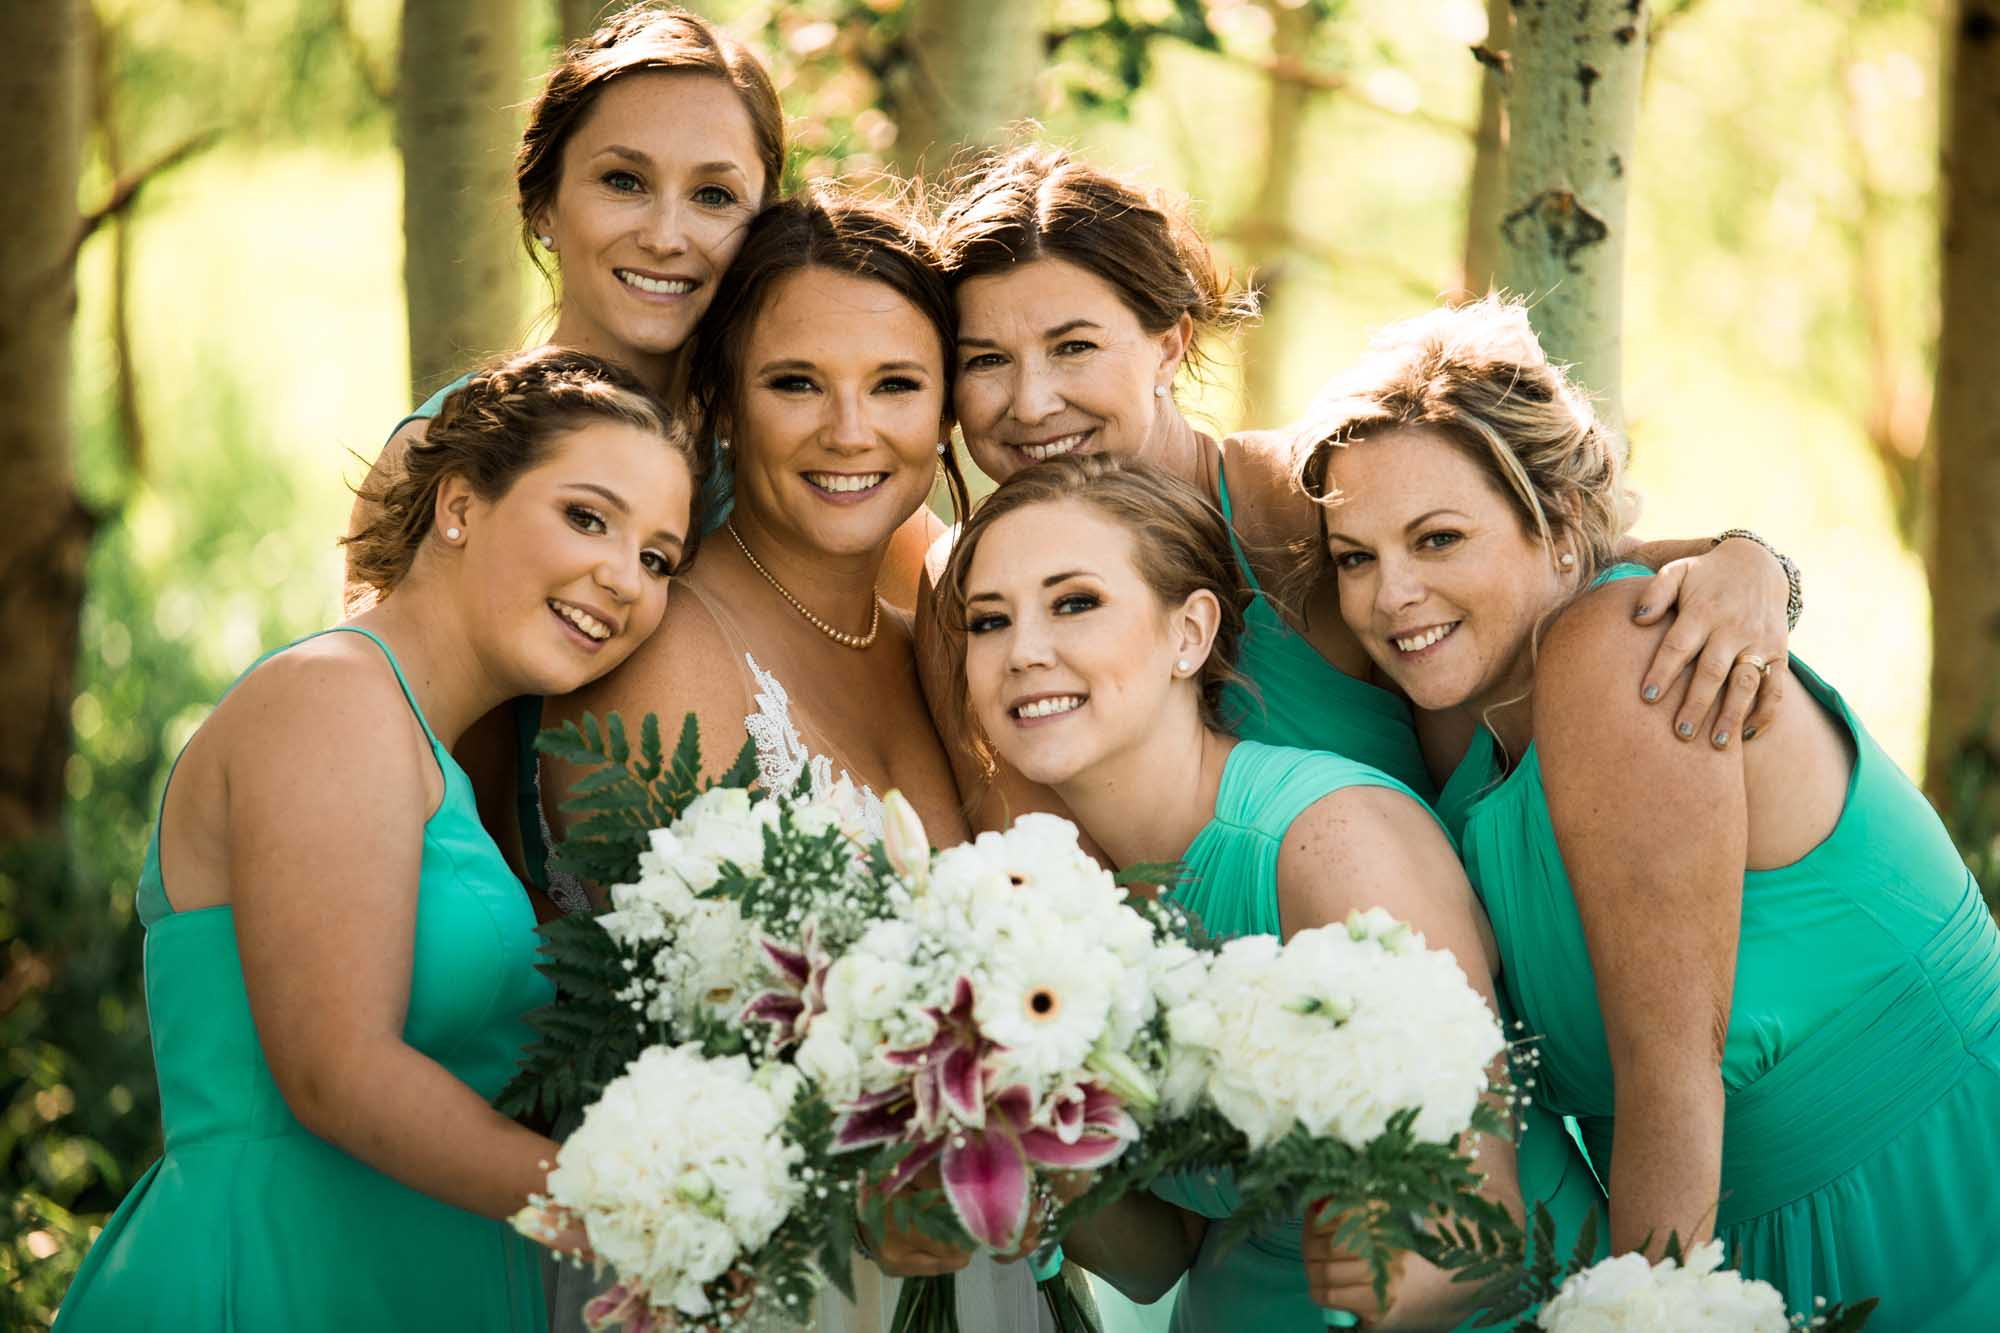 Calgary engagement and wedding photographer, bride and bridesmaids photo during bridal portraits at Nose Hill Park